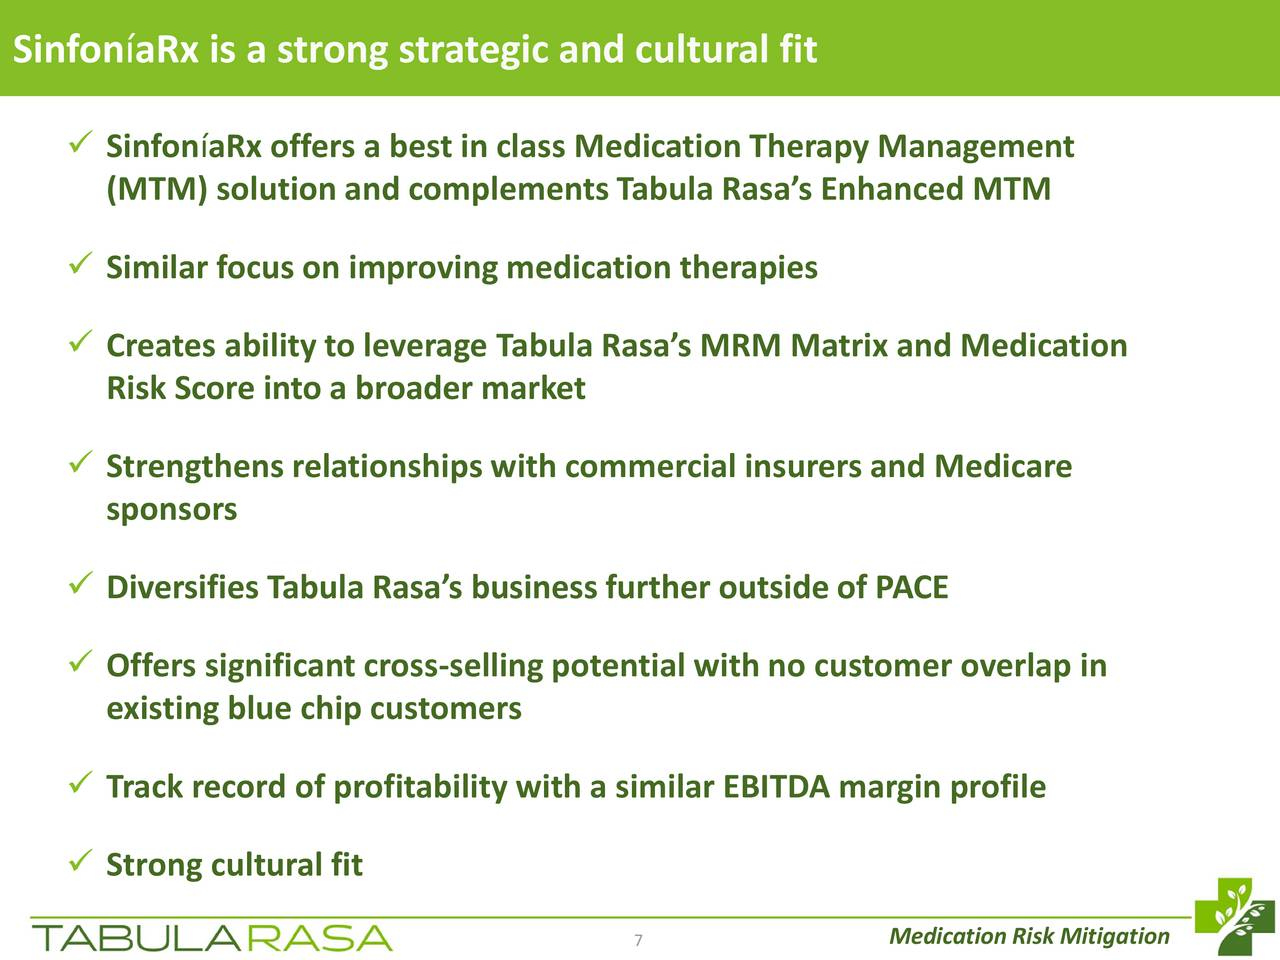 tabula rasa healthcare (trhc) presents at 2017 wells fargo